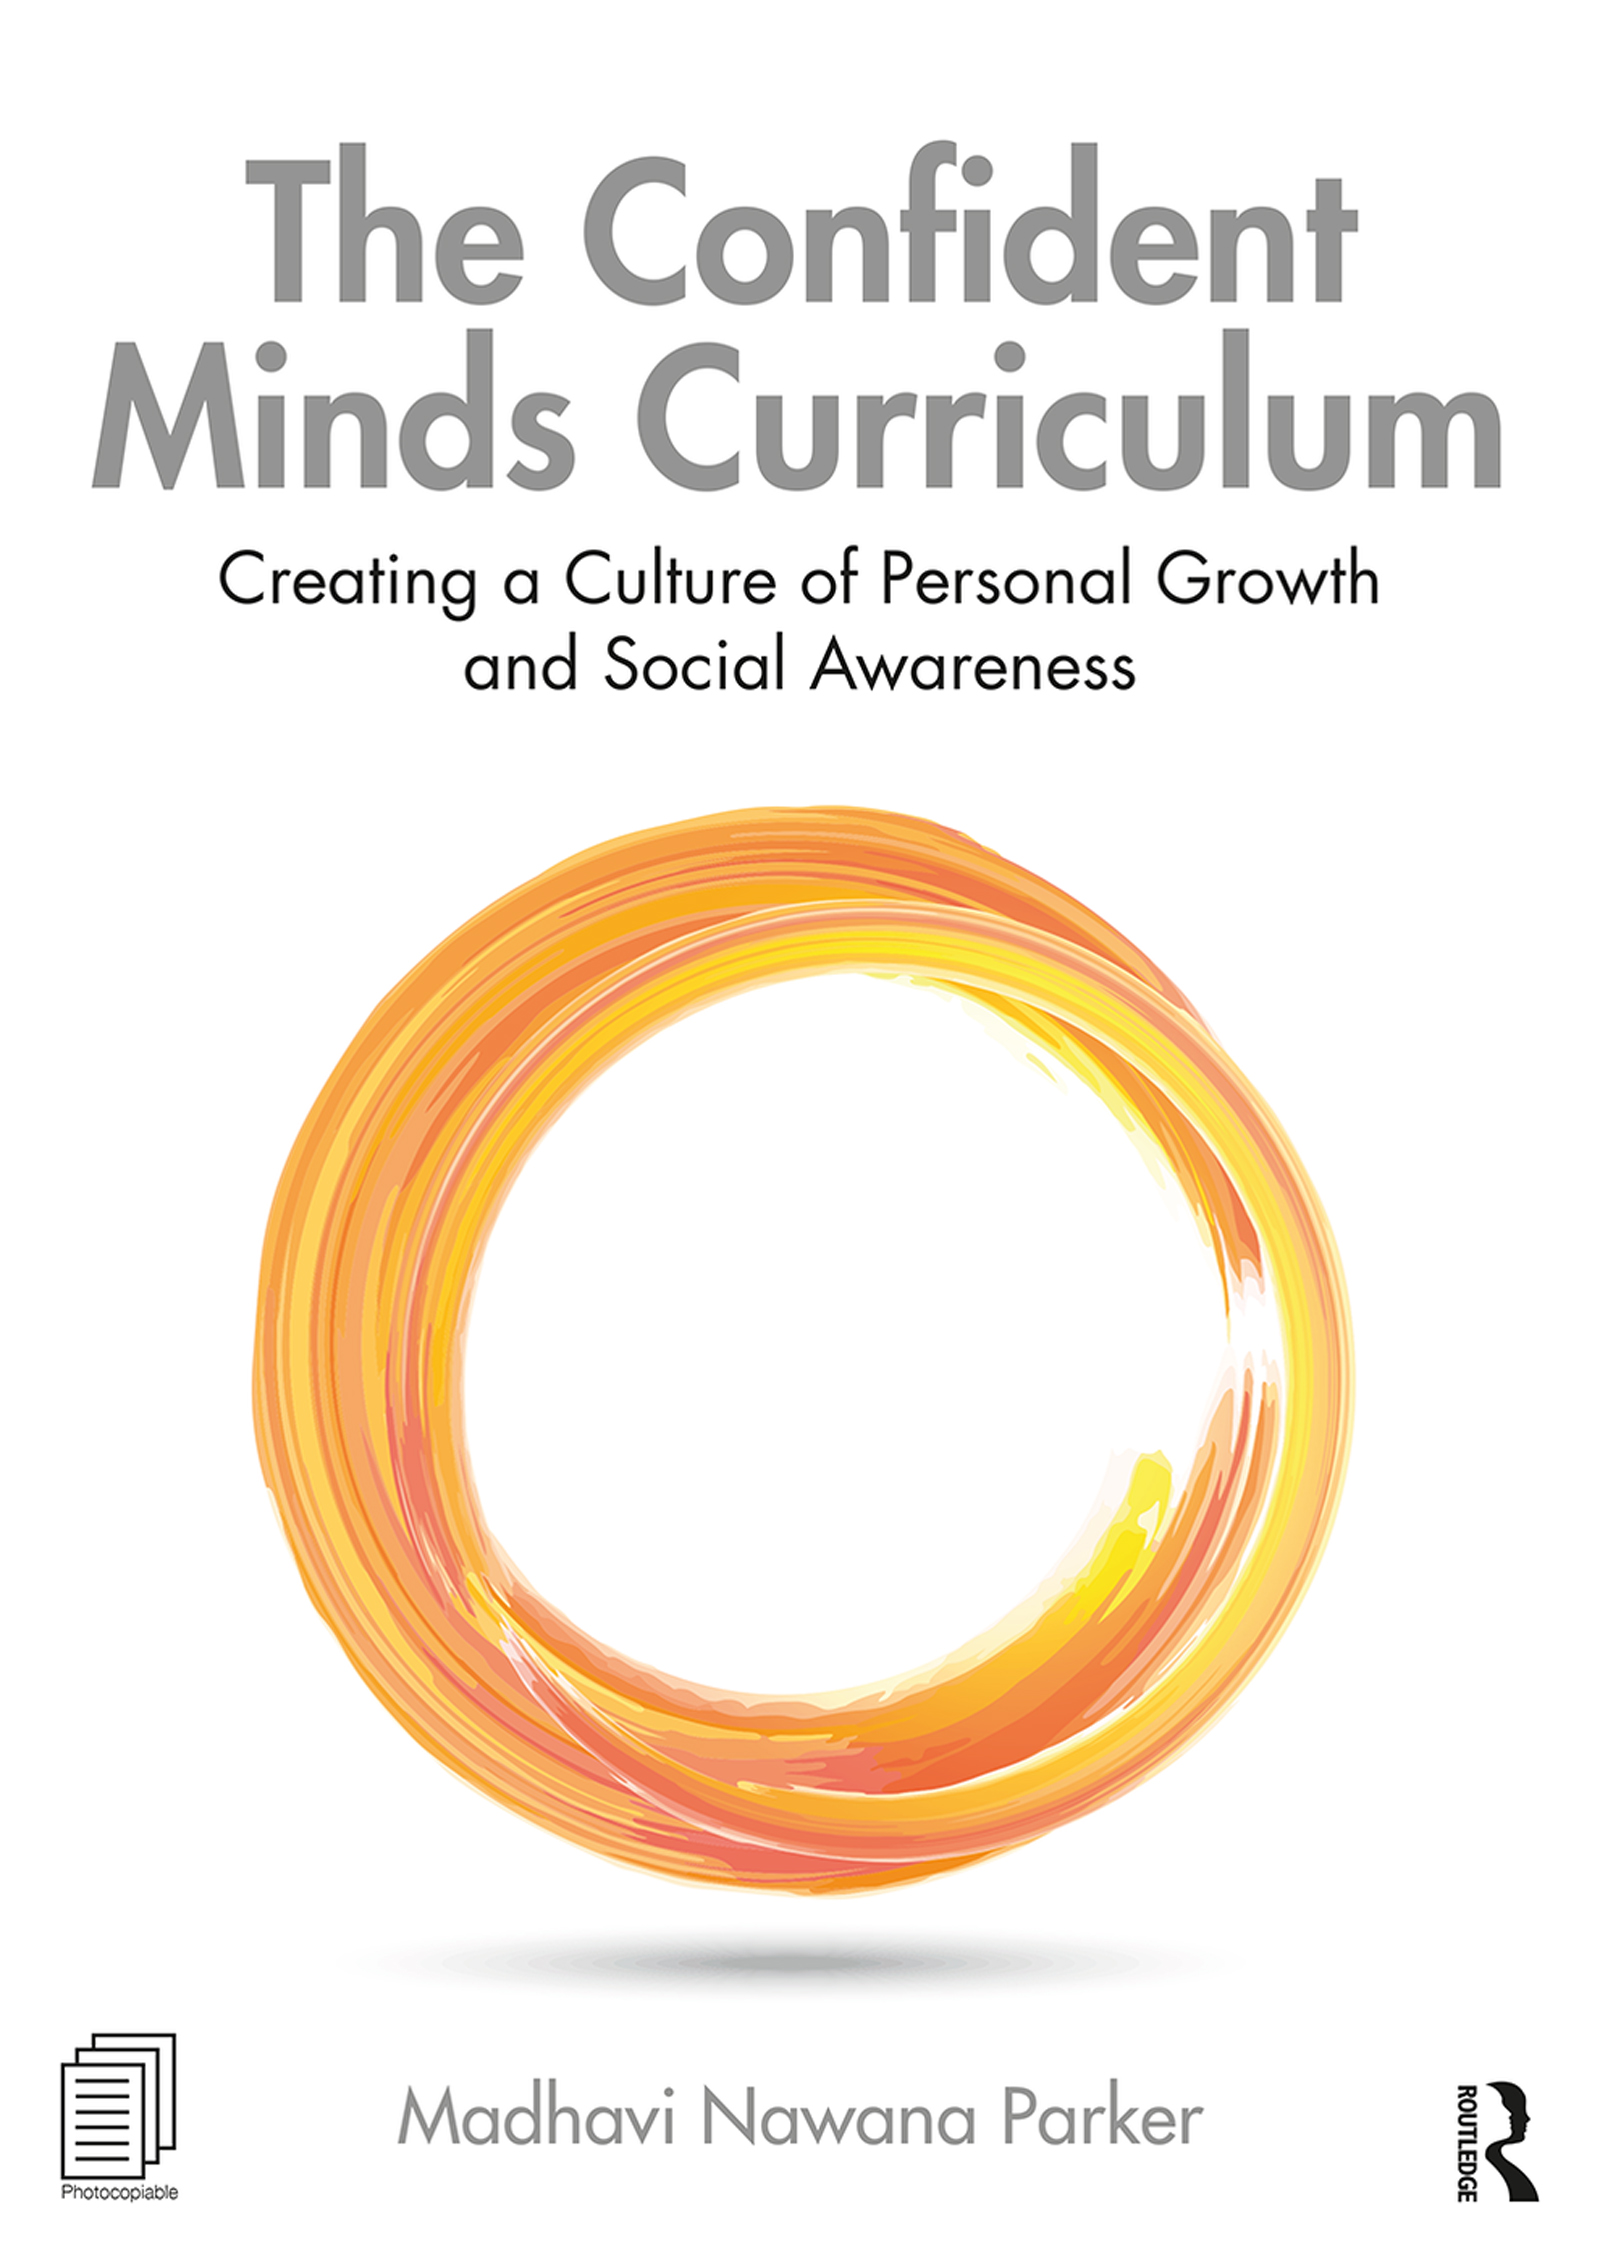 The Confident Minds Curriculum: Creating a Culture of Personal Growth and Social Awareness book cover